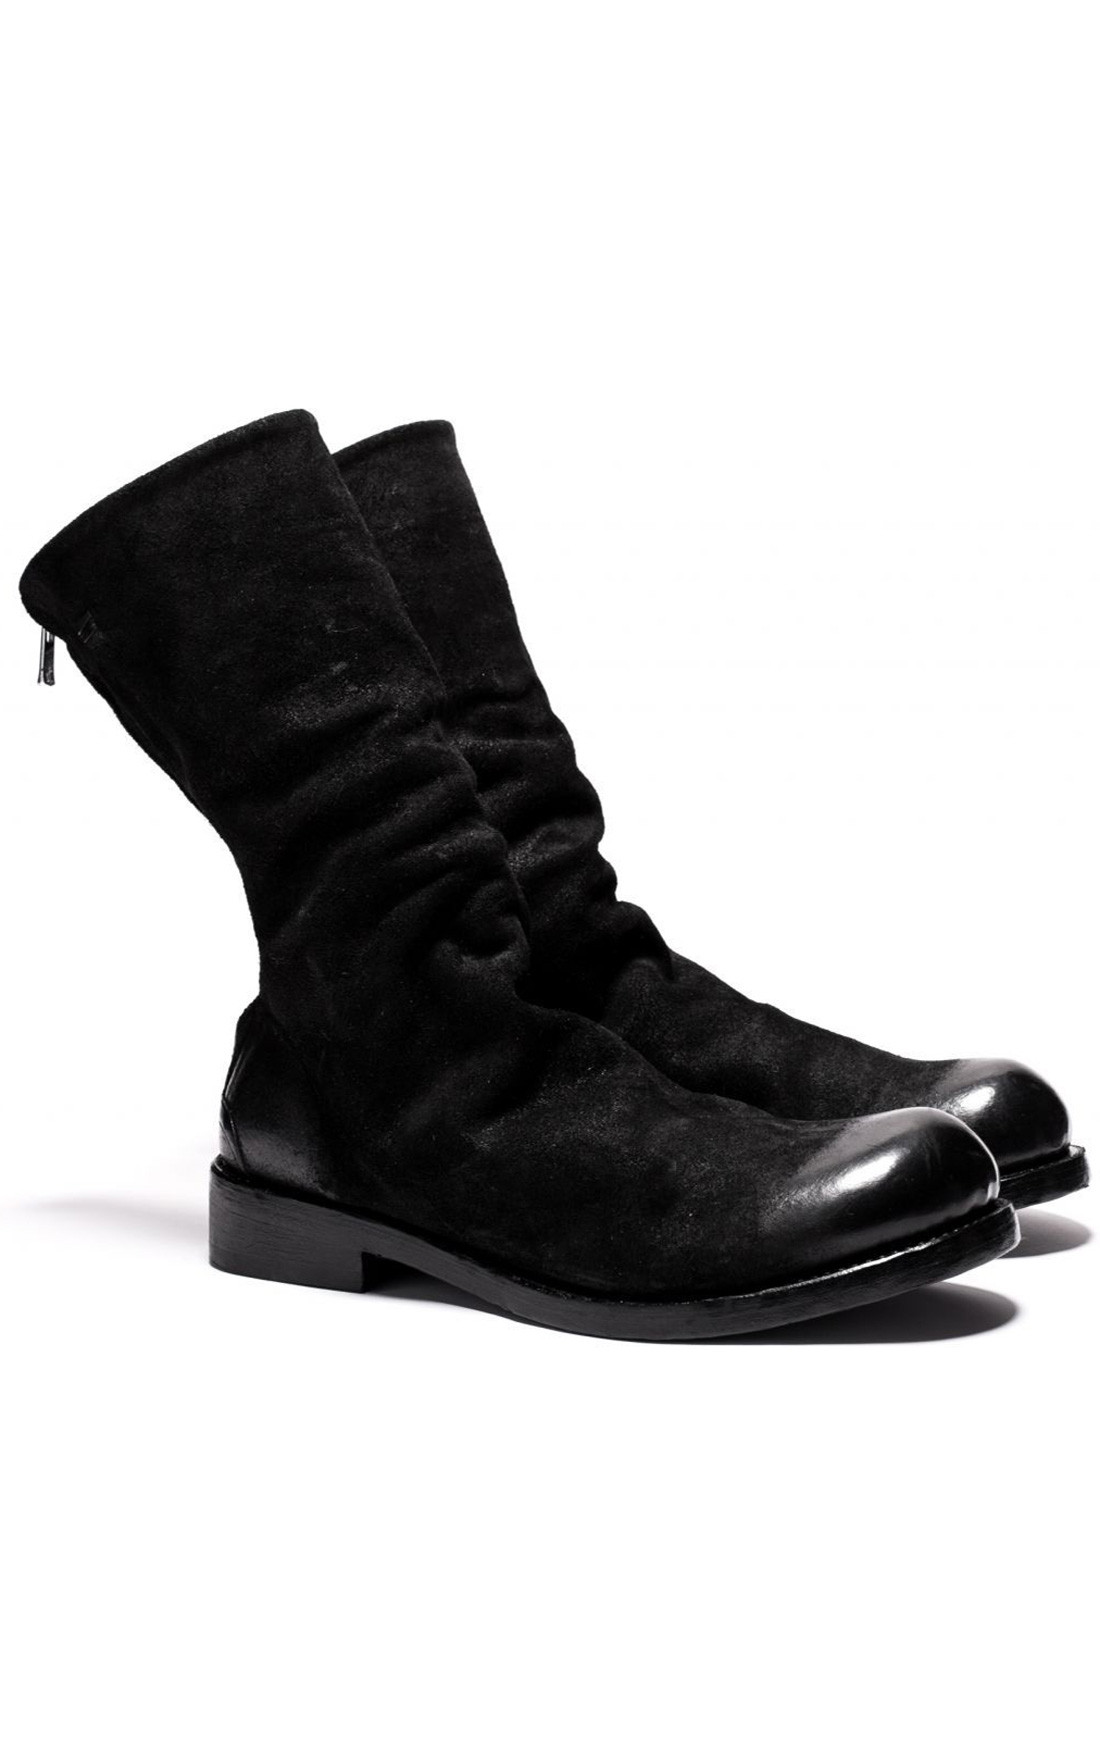 The Last Conspiracy - Skjold Waxed Suede Ankle Boots (TLC2168)